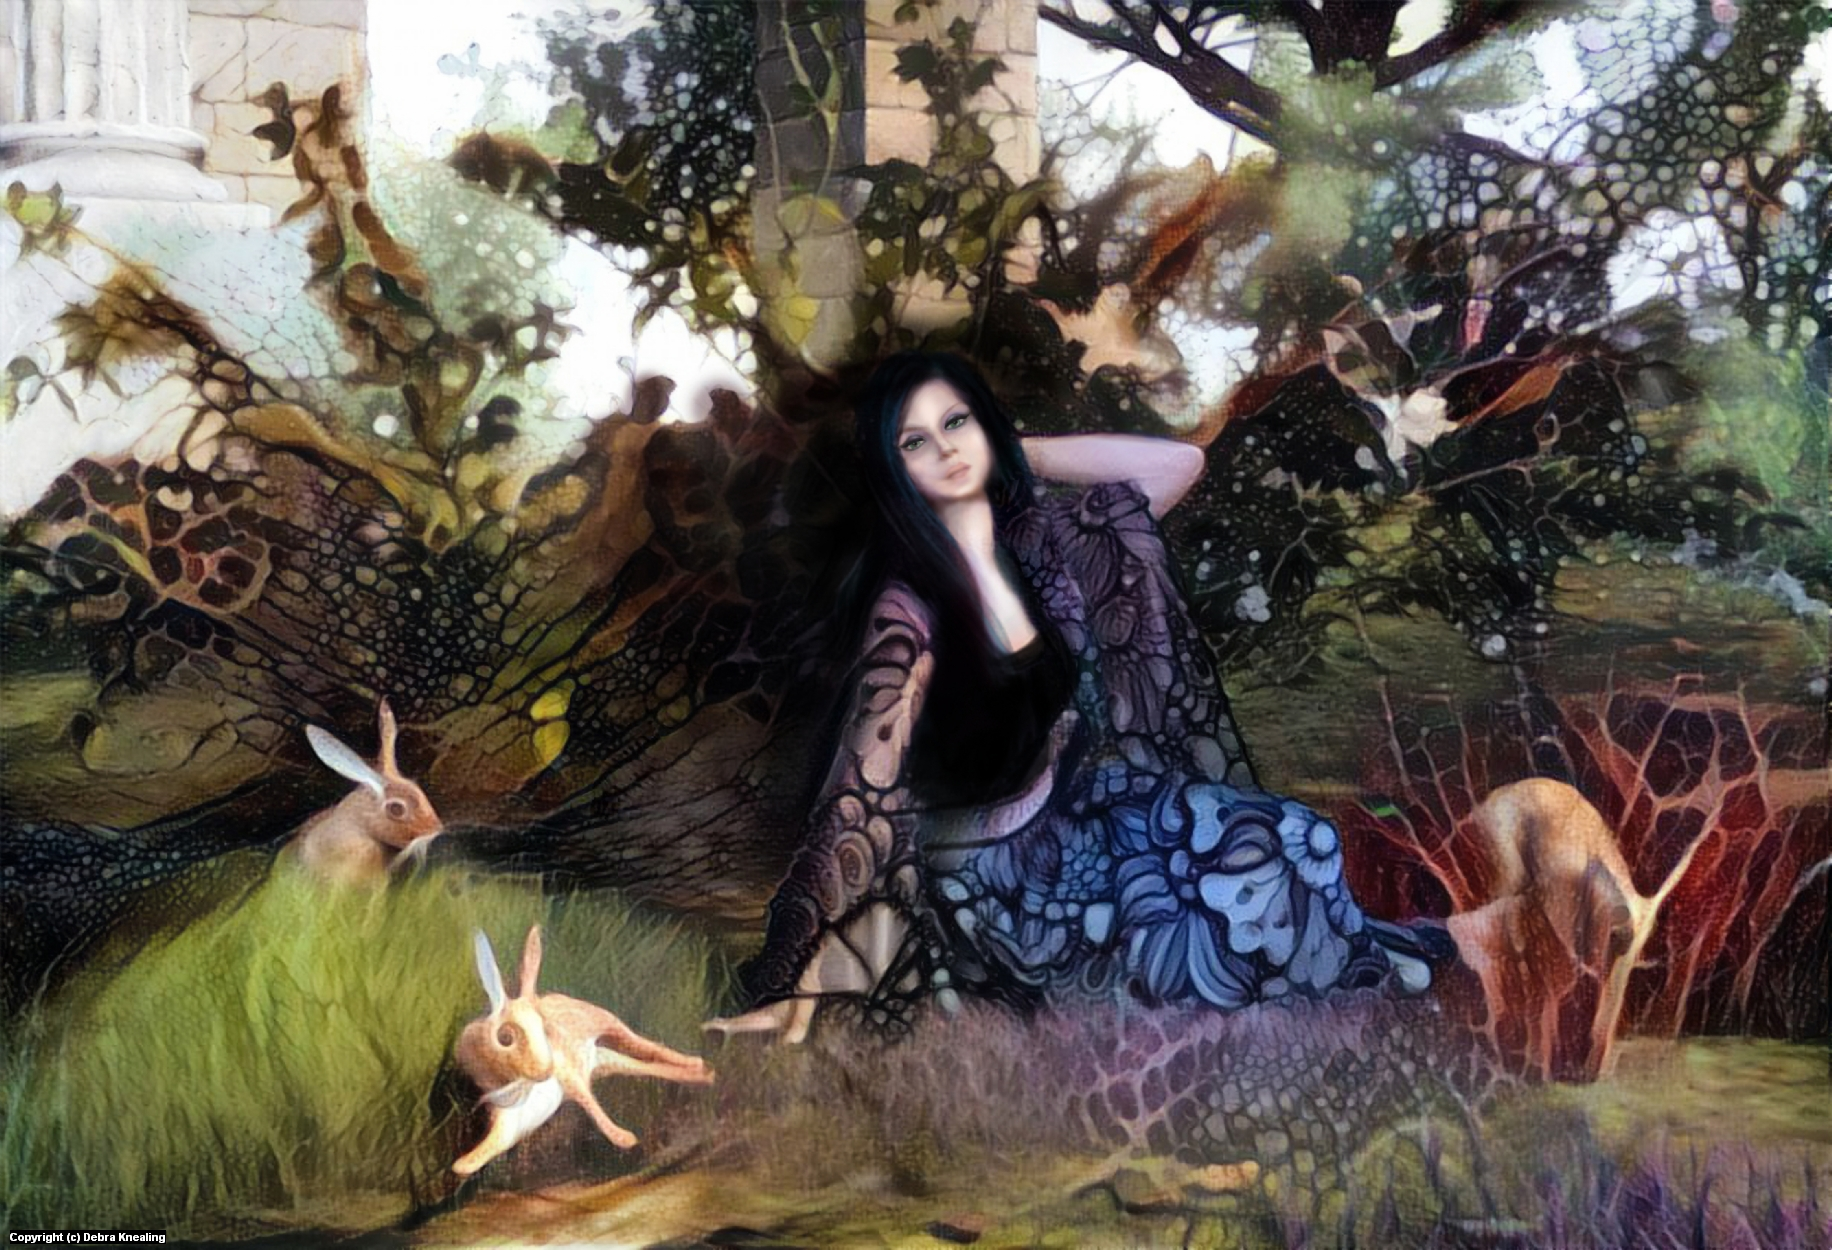 Eostre Artwork by Debra Knealing